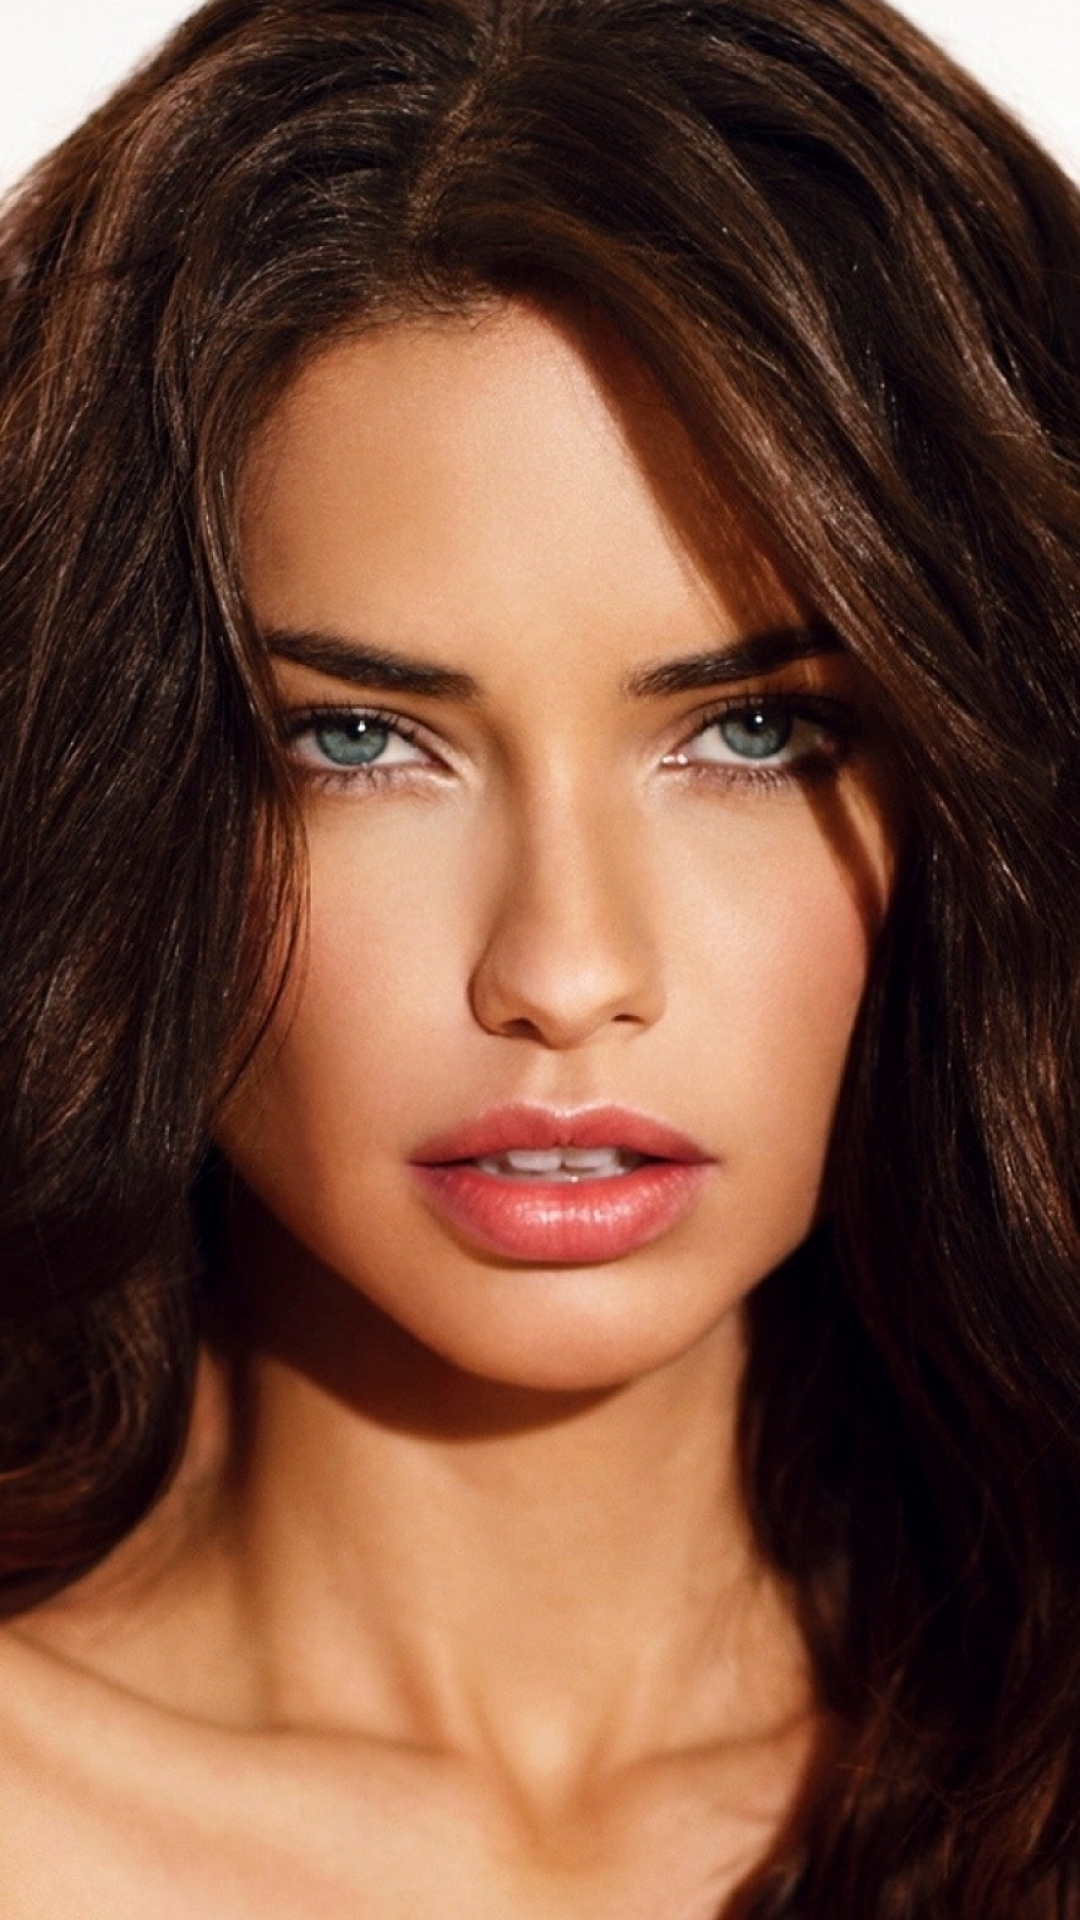 Celebrityadriana lima 1080x1920 wallpaper id 503742 mobile abyss celebrity adriana lima 1080x1920 mobile wallpaper voltagebd Images